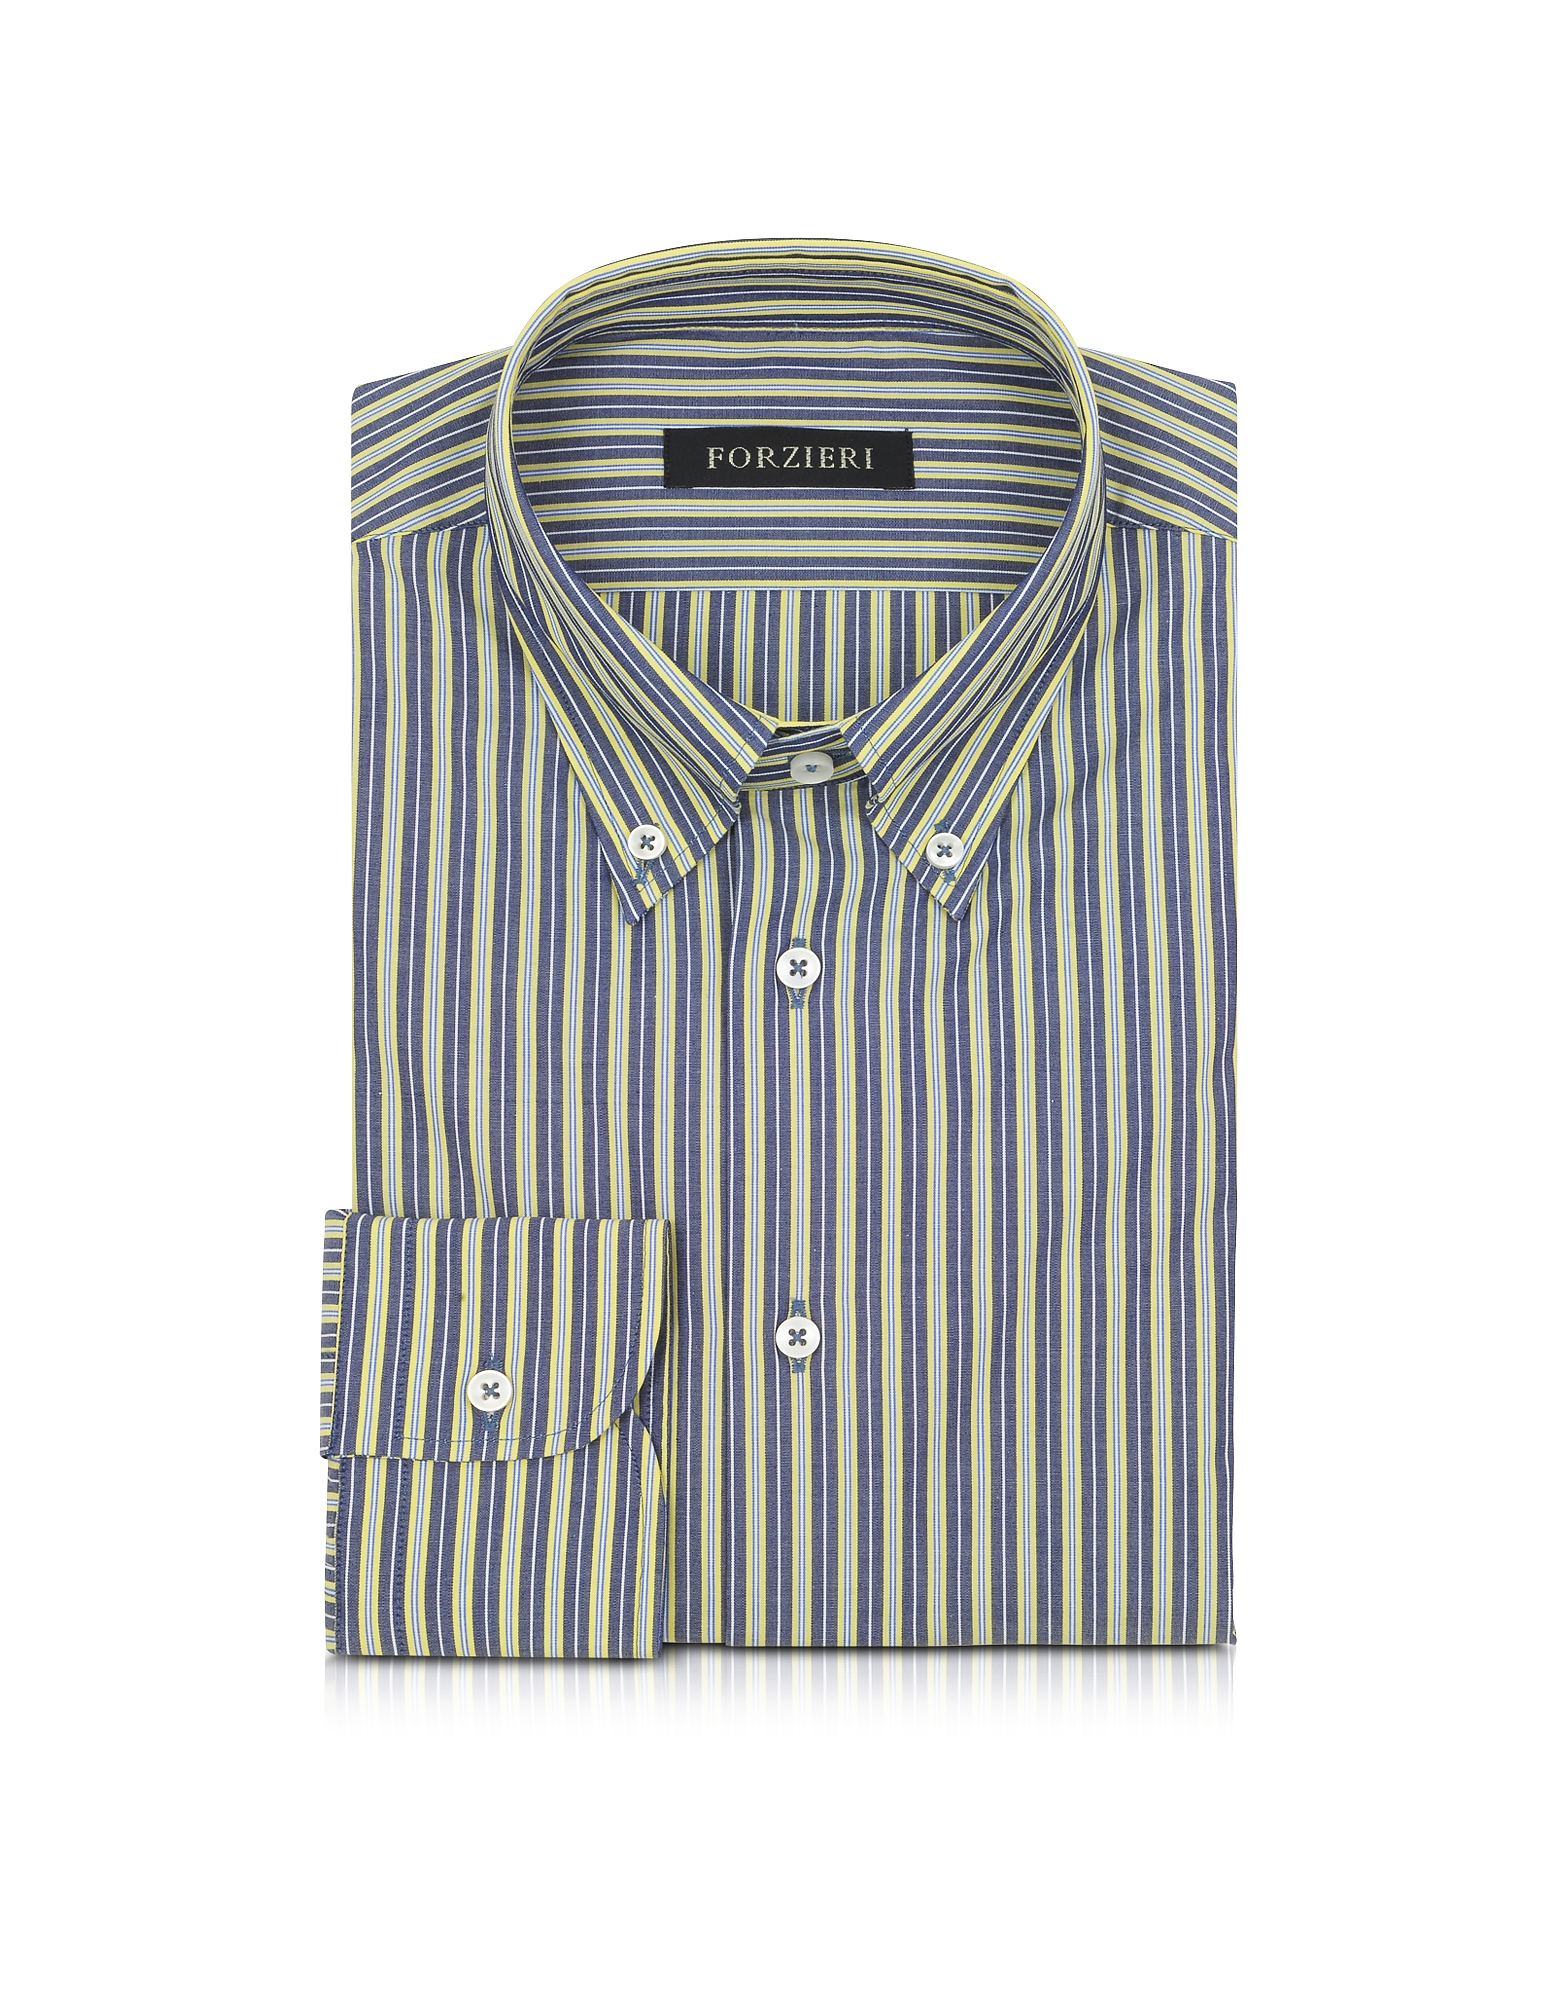 Camicia Button Down Slim Fit in Cotone a Righe Blu/Giallo